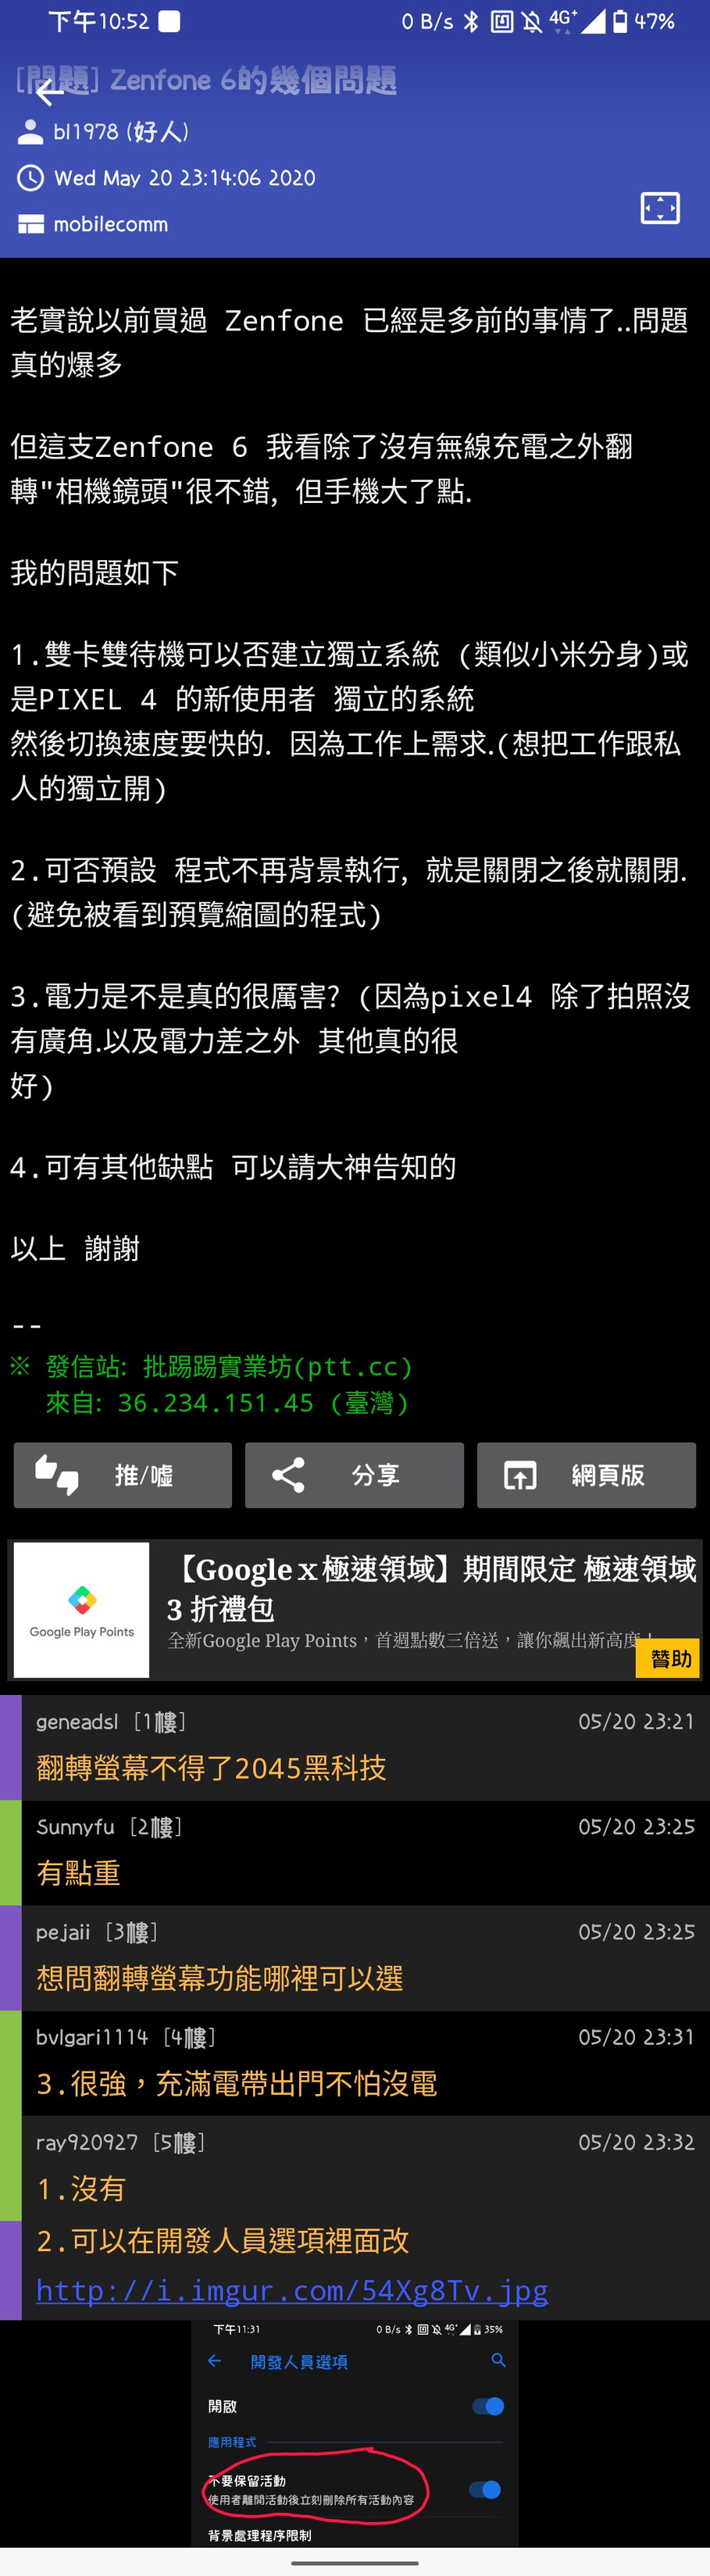 Screenshot_20200527-225219957.jpg